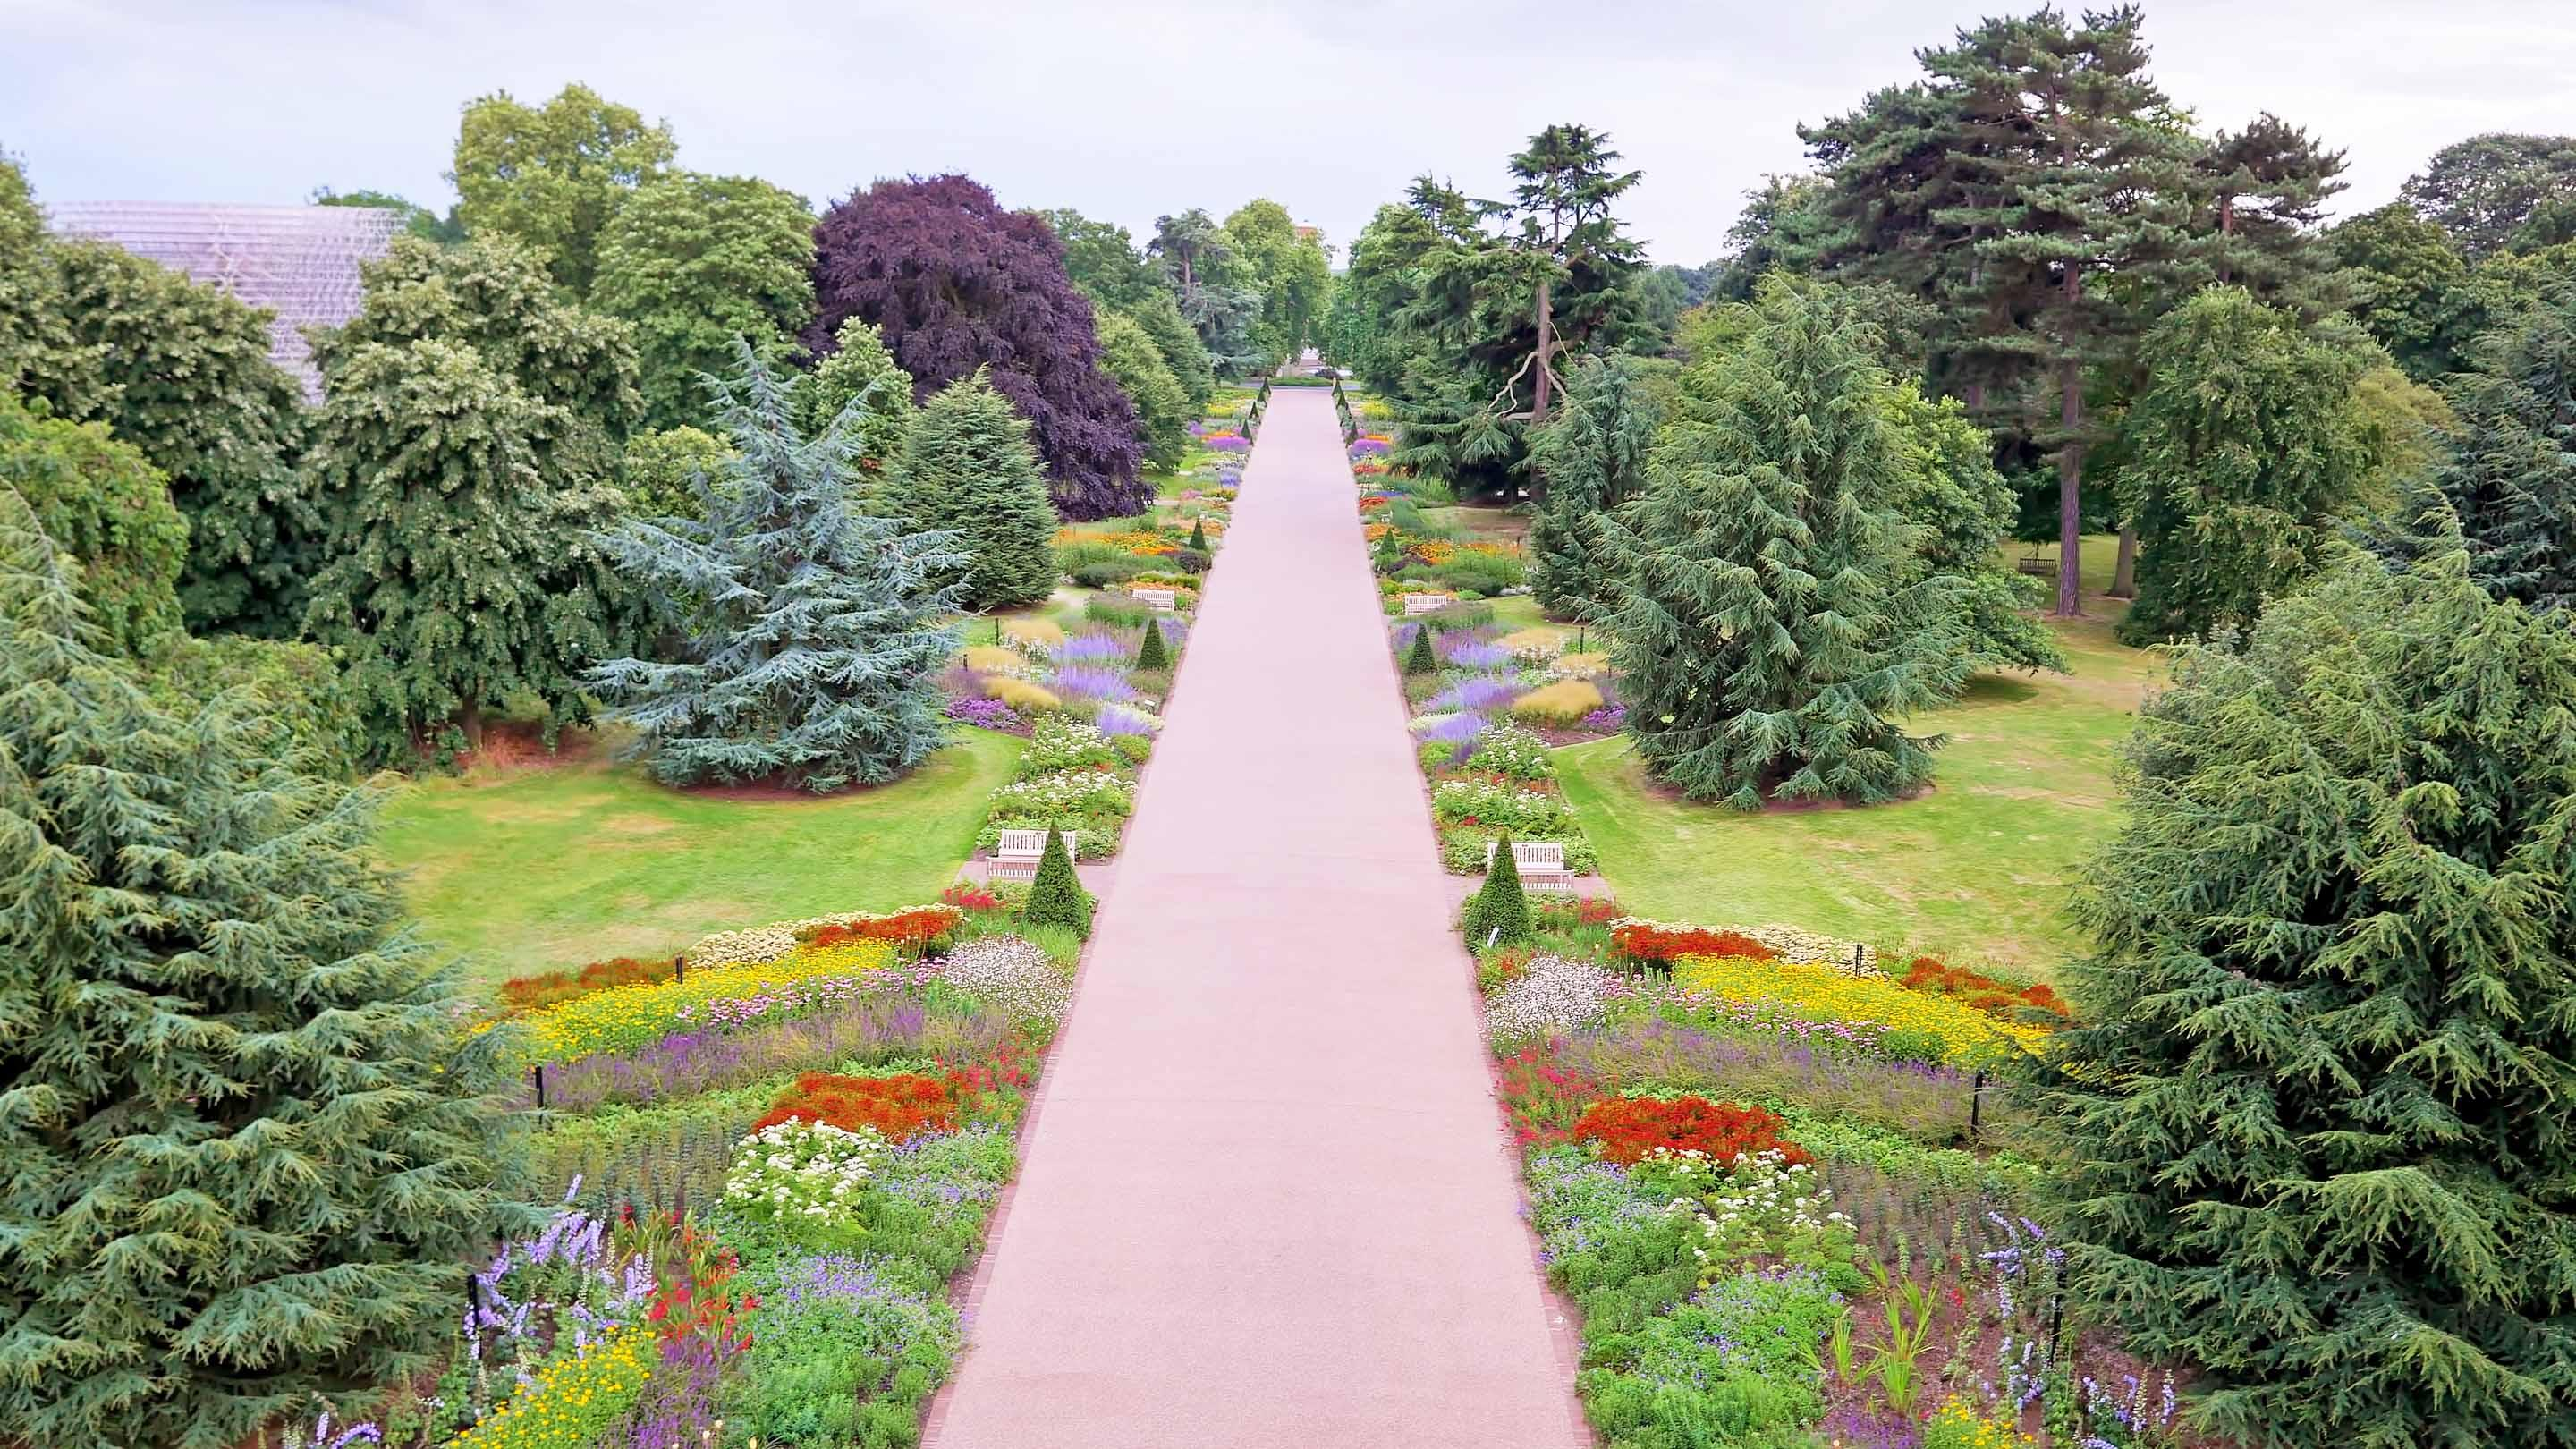 The Royal Botanic Gardens at Kew has more than 50,000 species of native and exotic plants, trees, and flowers on site.  – © RBG Kew